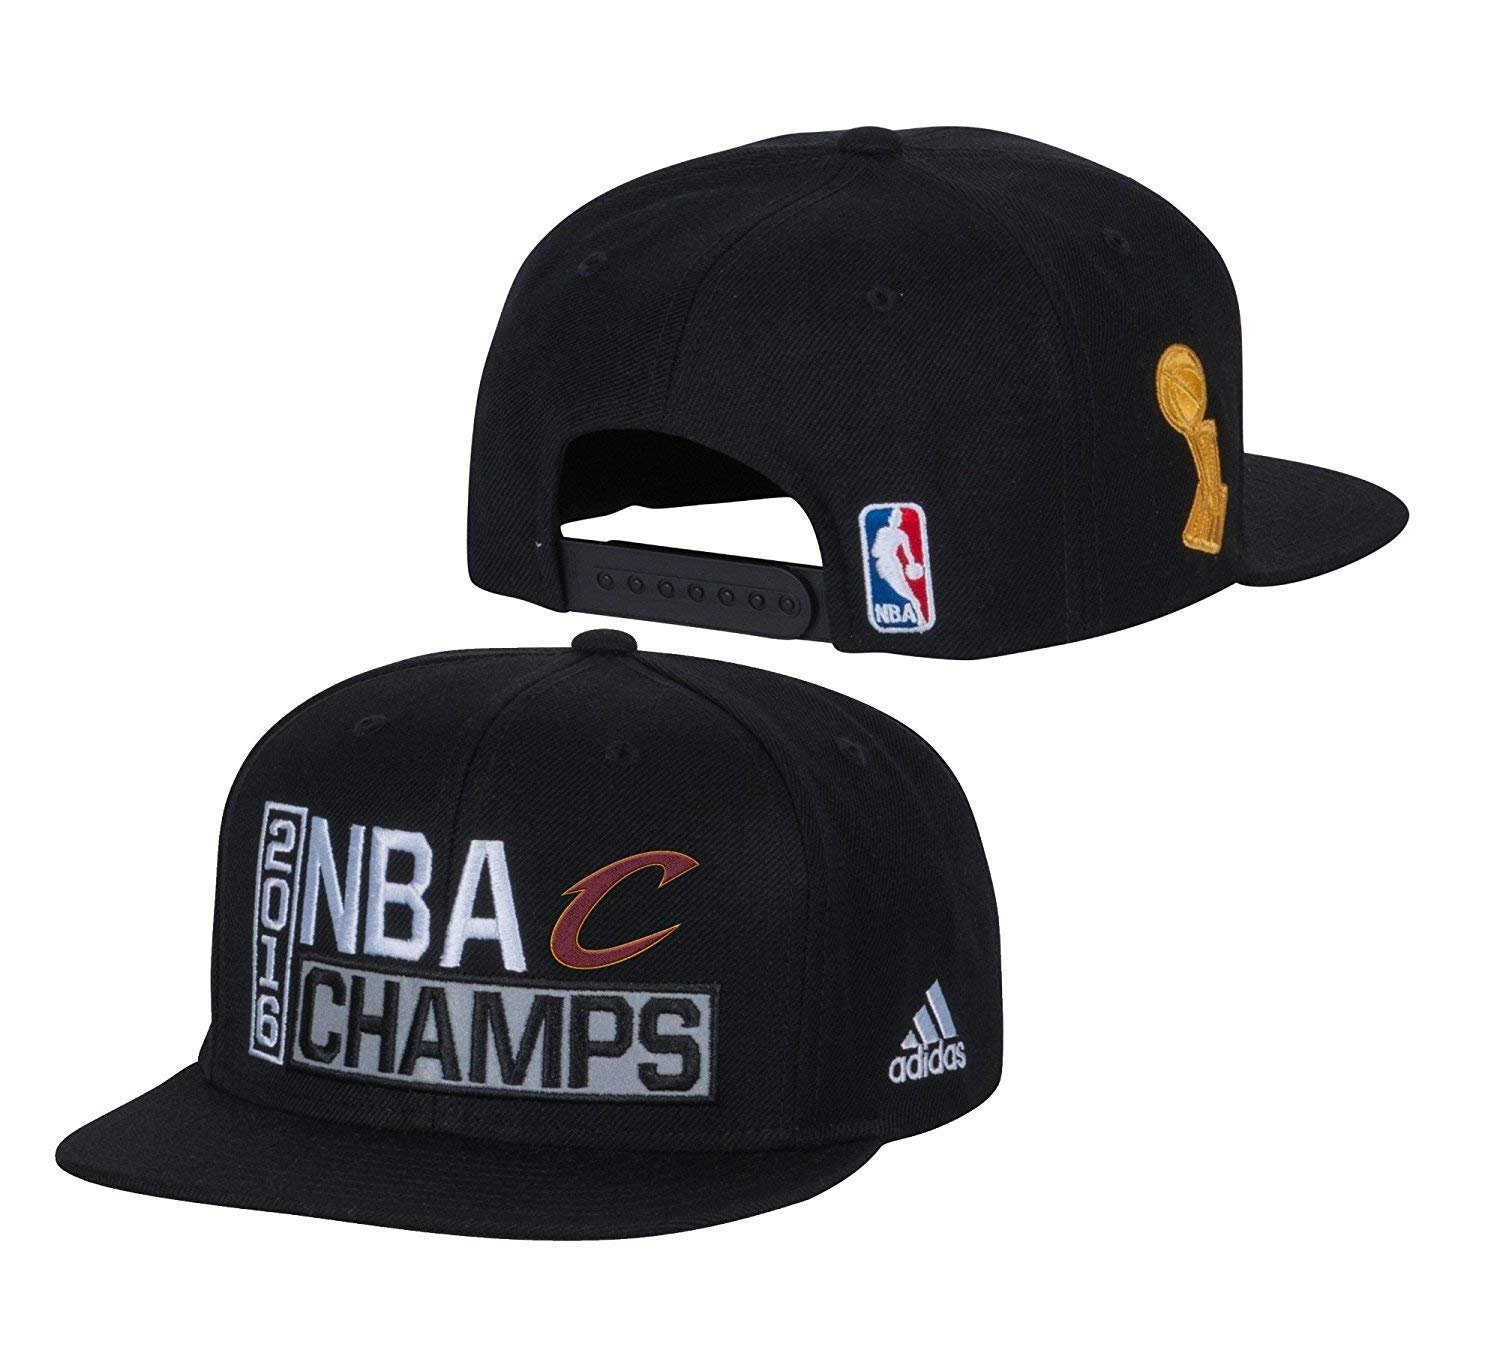 3a6b9c3afe0 ... discount outerstuff cleveland cavaliers youth nba 2016 champs  adjustable snapback hat walmart b4d1c bf39b